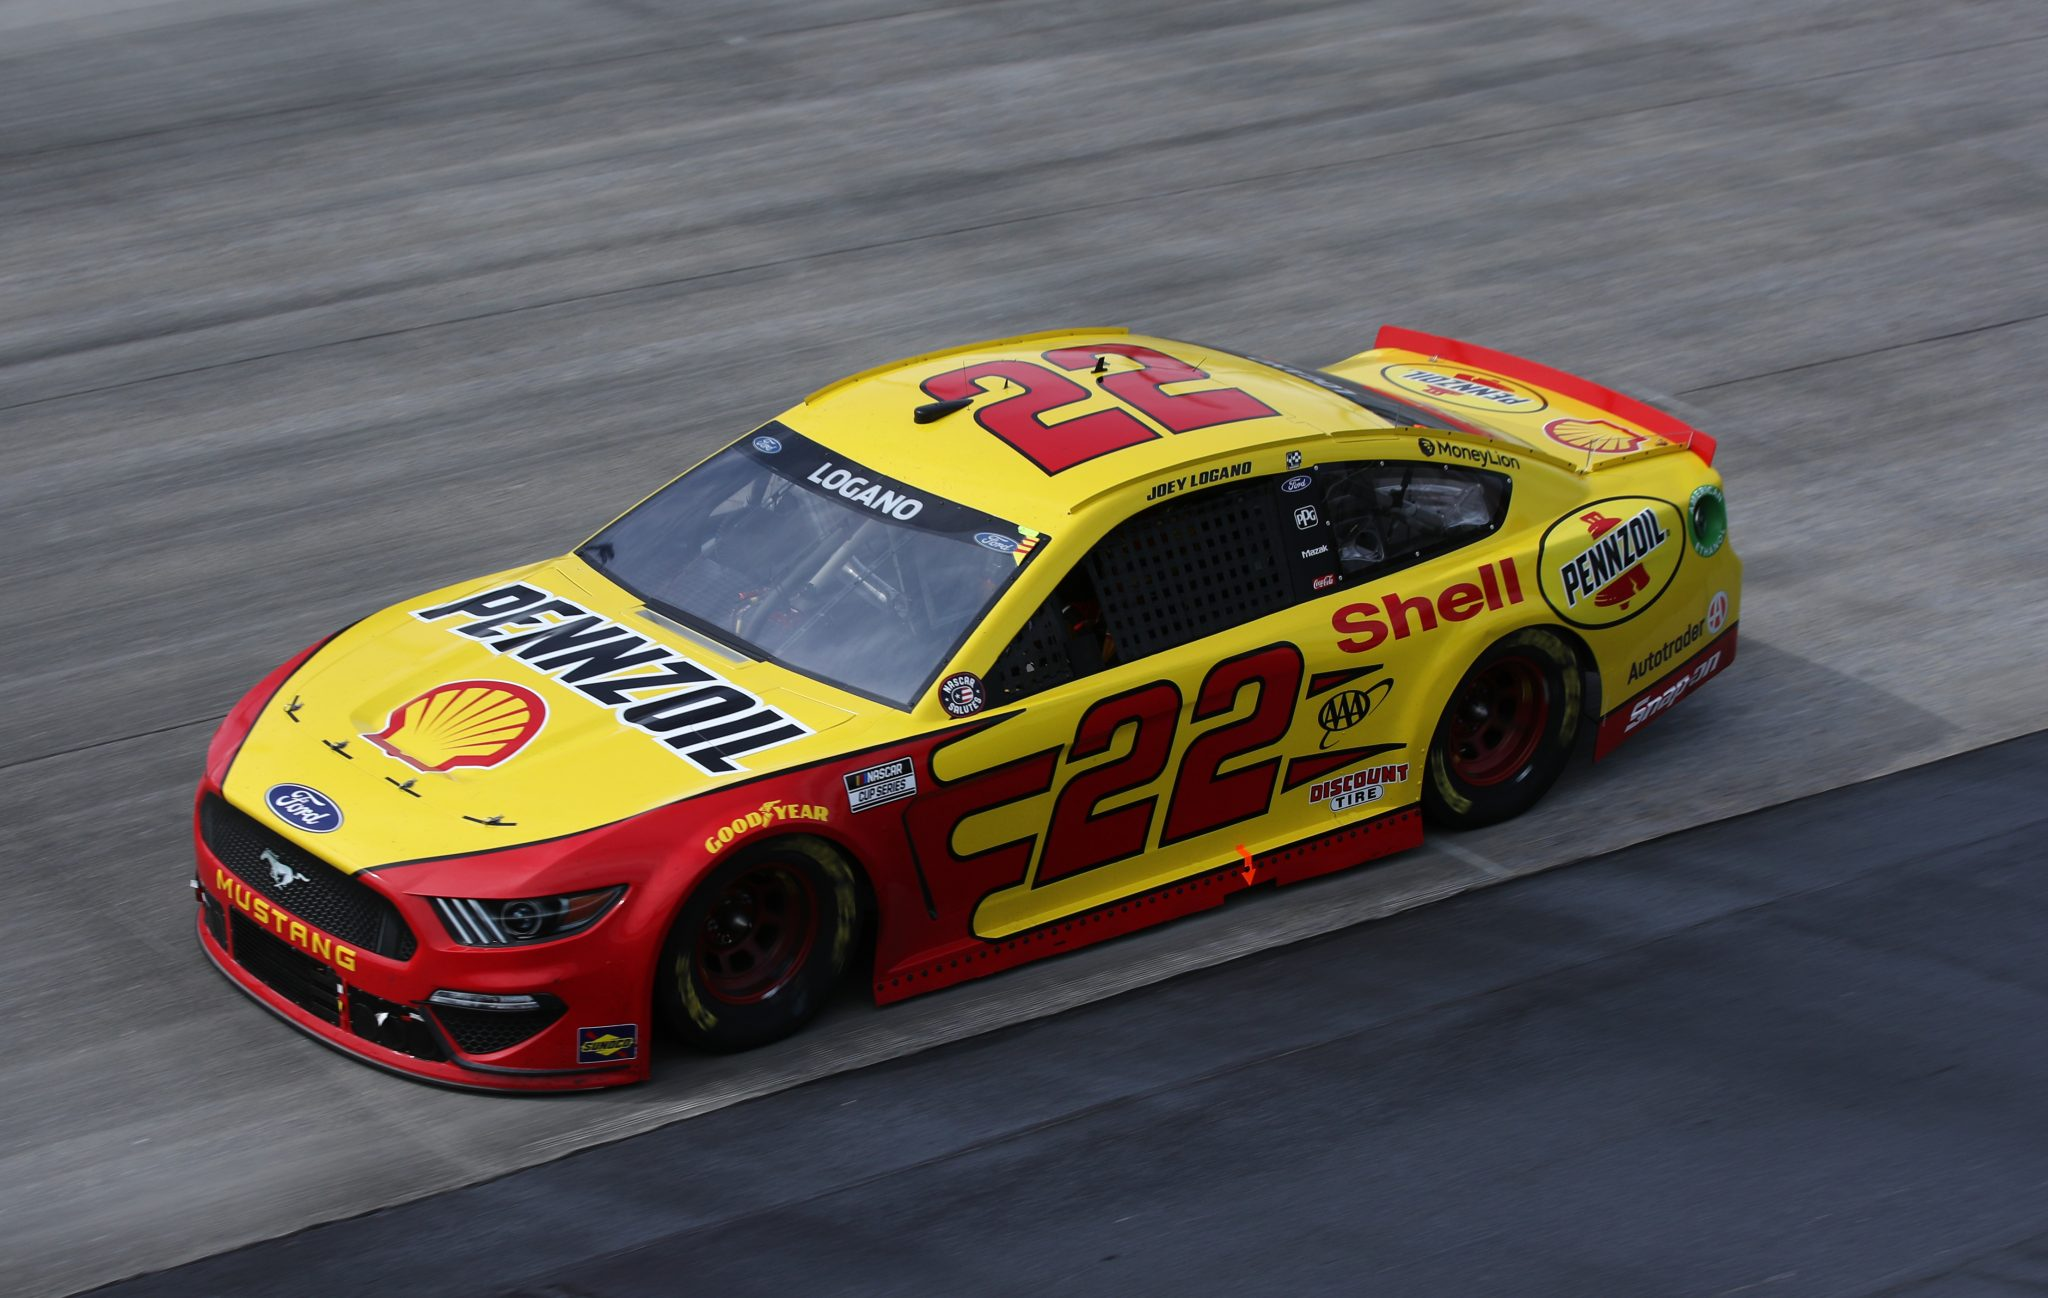 DOVER, DELAWARE - MAY 16: Joey Logano, driver of the #22 Shell Pennzoil Ford, races during the NASCAR Cup Series Drydene 400 at Dover International Speedway on May 16, 2021 in Dover, Delaware. (Photo by Sean Gardner/Getty Images) | Getty Images